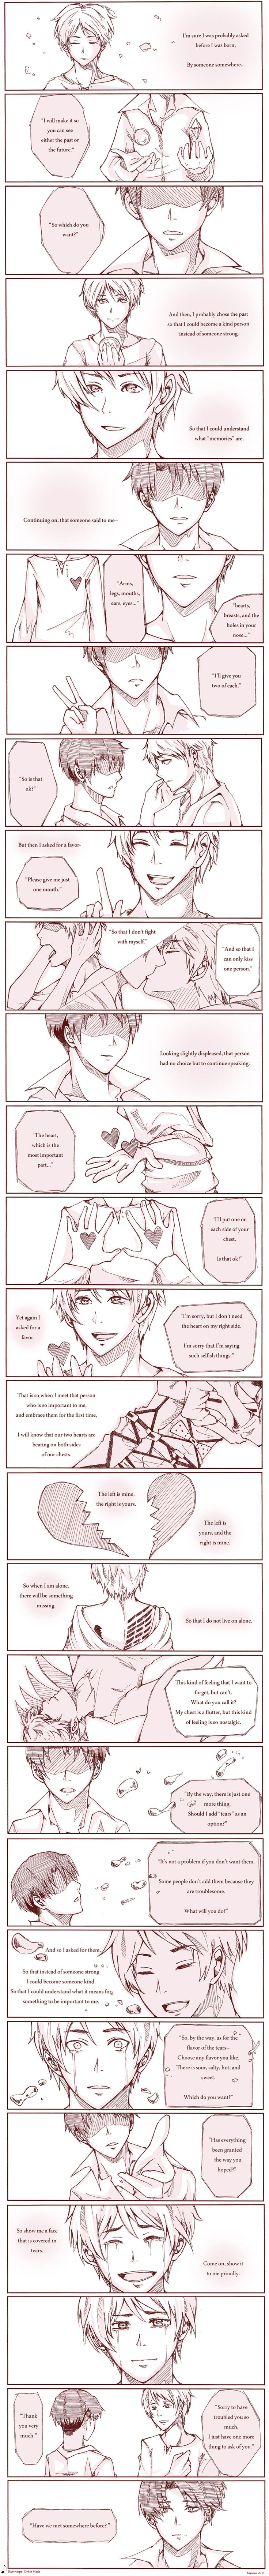 Found this comic on Deviantart. The words are lyrics to the Japanese song Order Made by Radwimps.